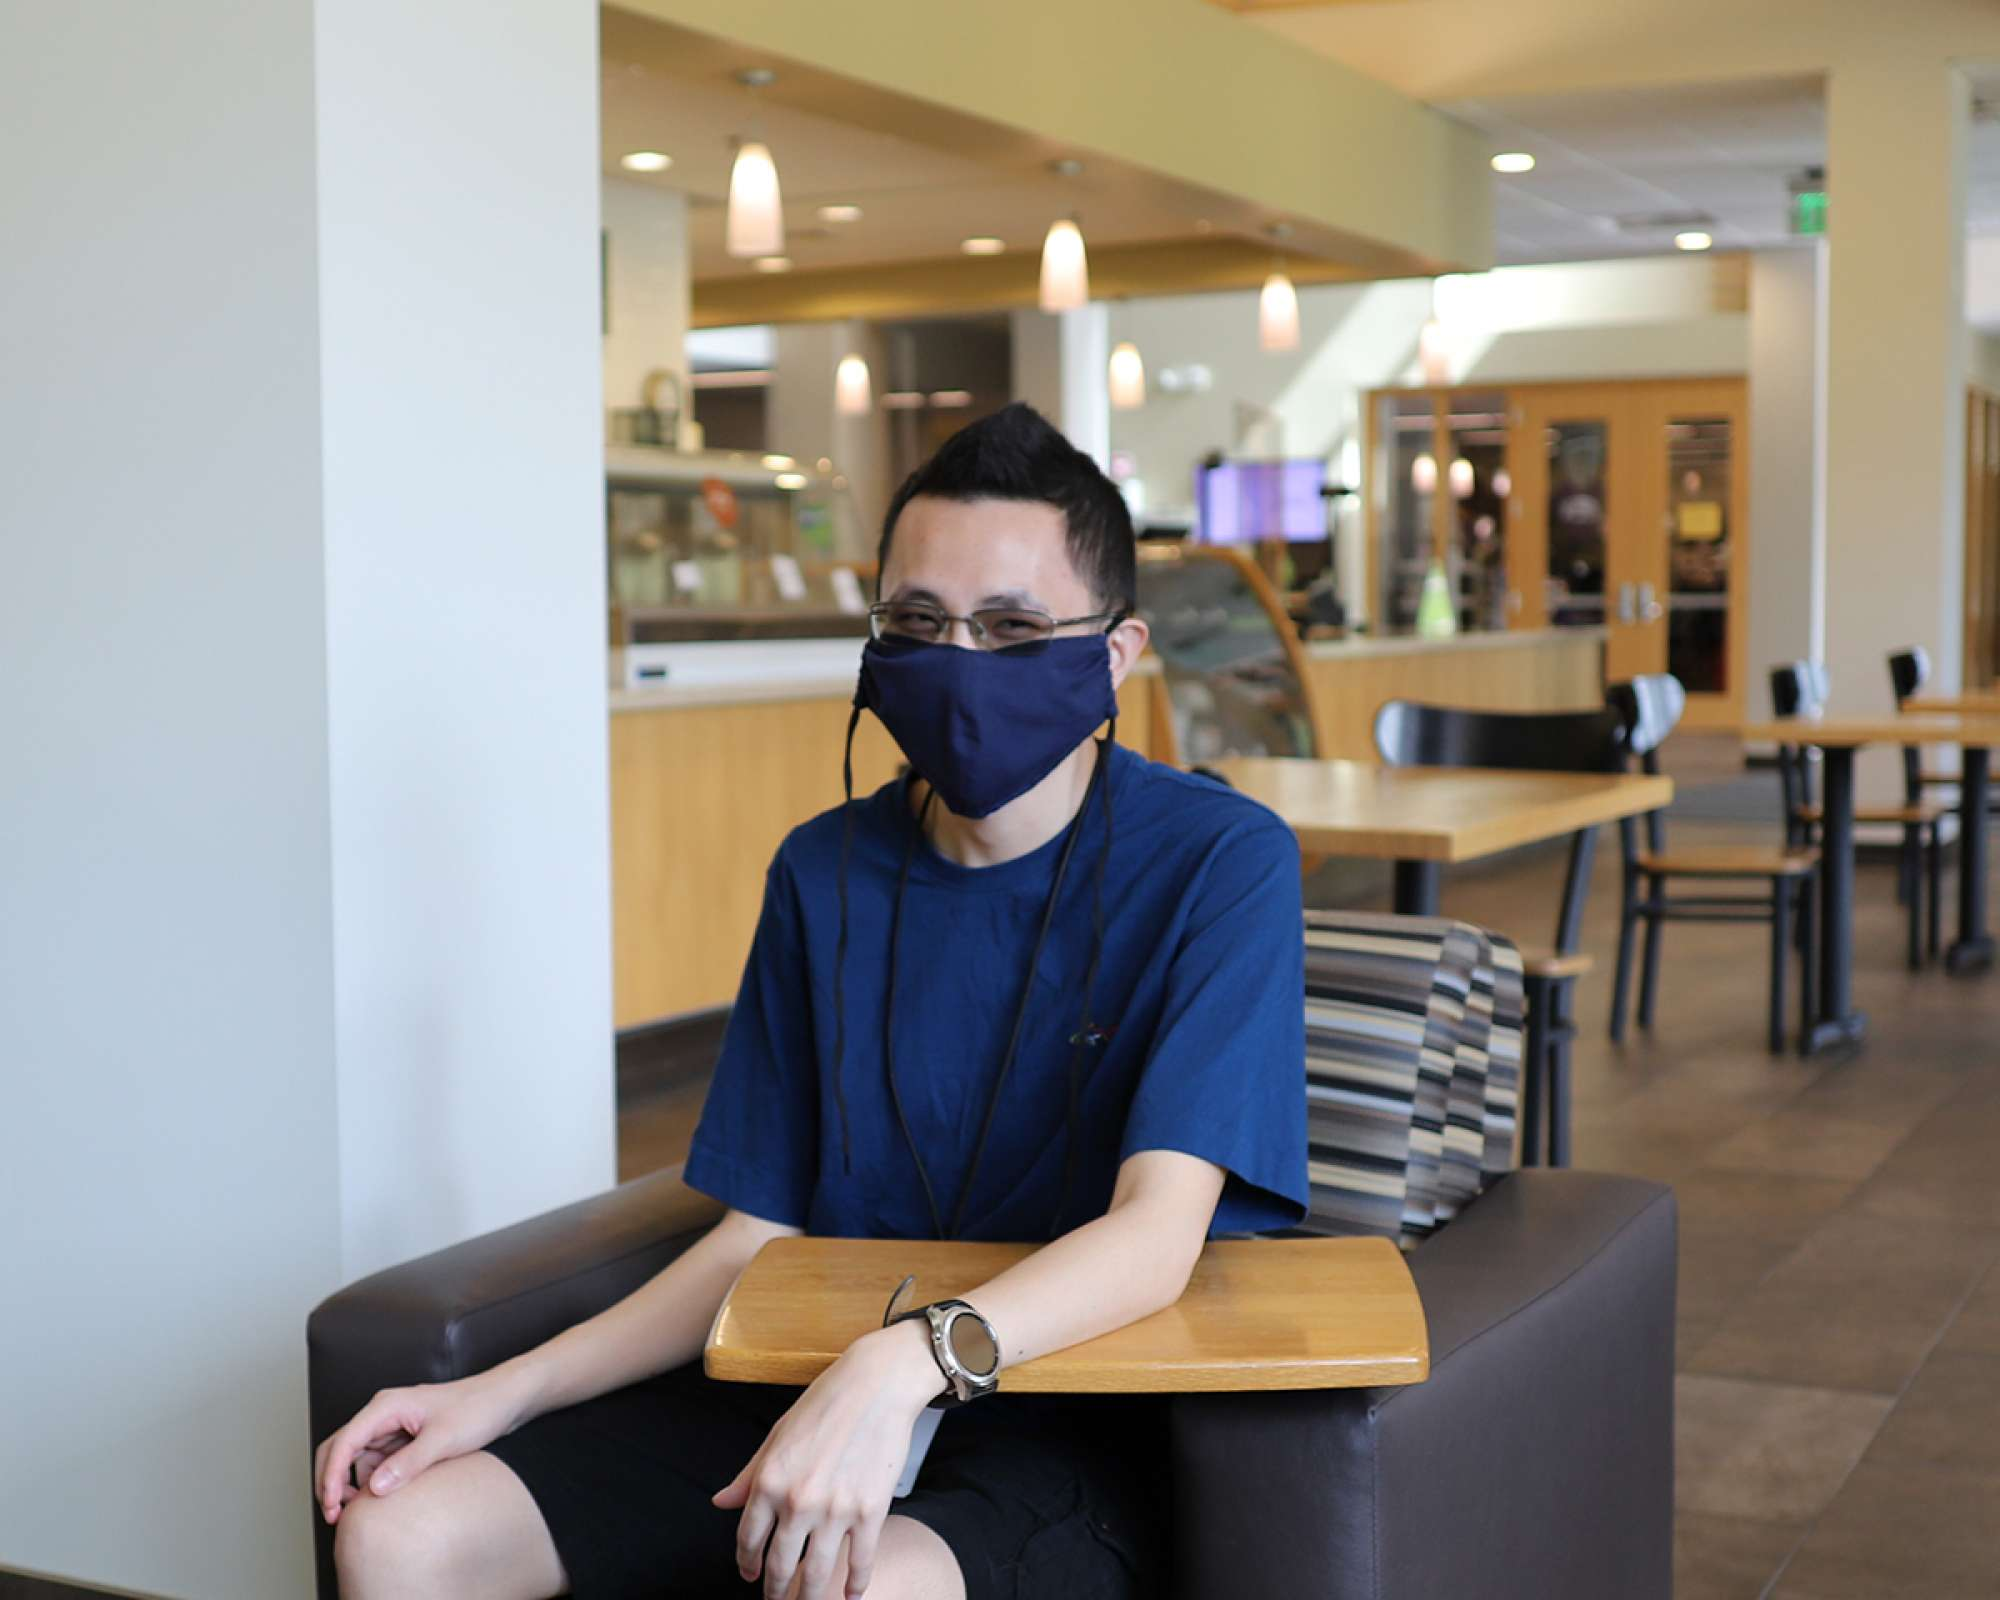 Student in chair wearing a mask